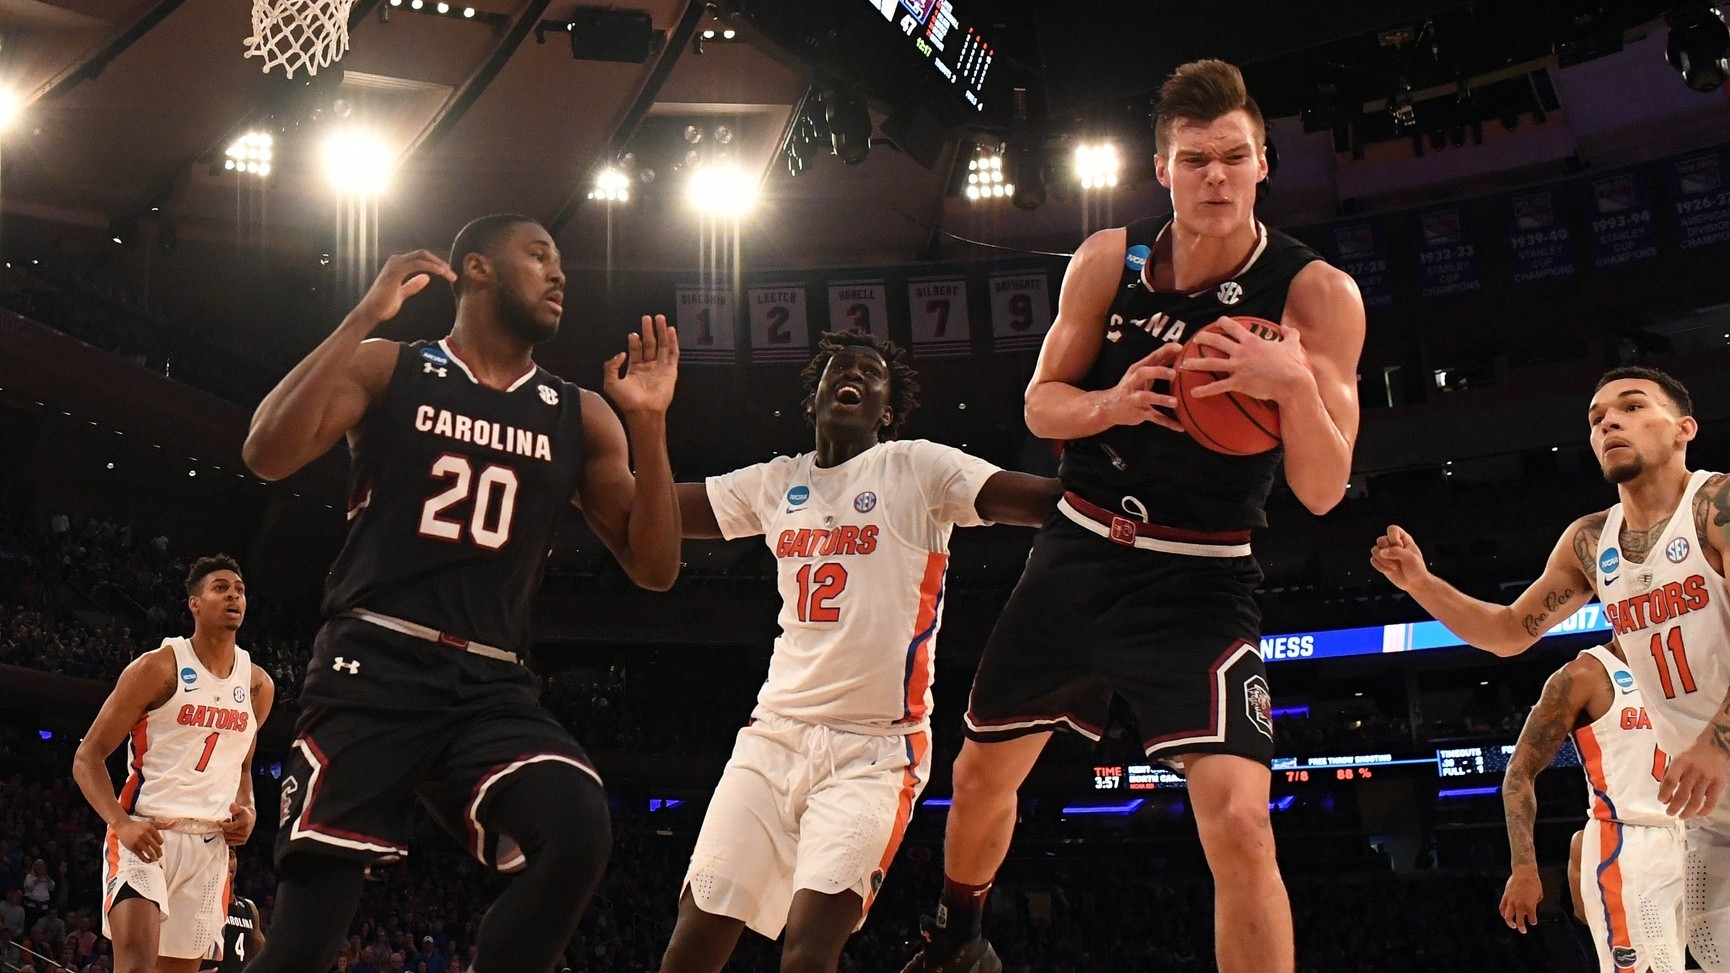 South Carolina's Maik Kotsar Is This Final Four's Most Unlikely Participant